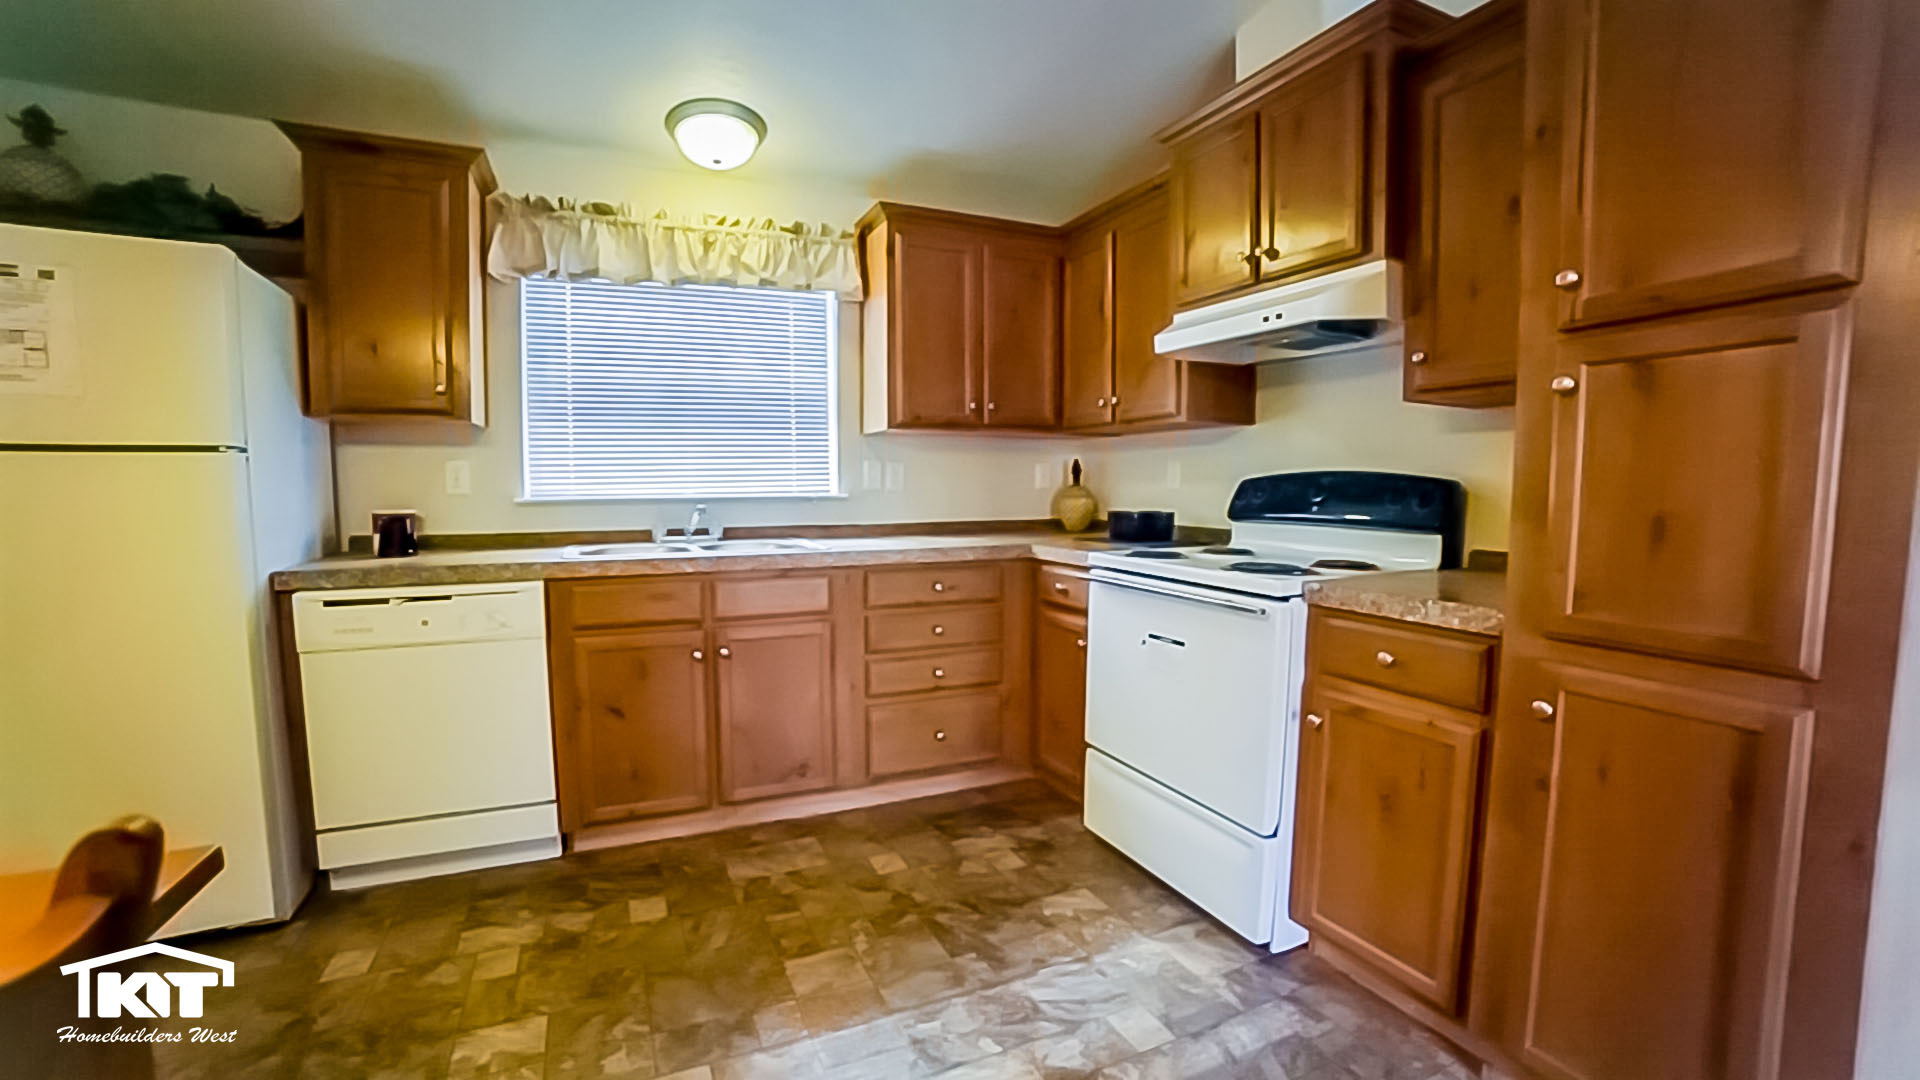 Washington home center in shelton wa manufactured home for Kitchen in the canyon